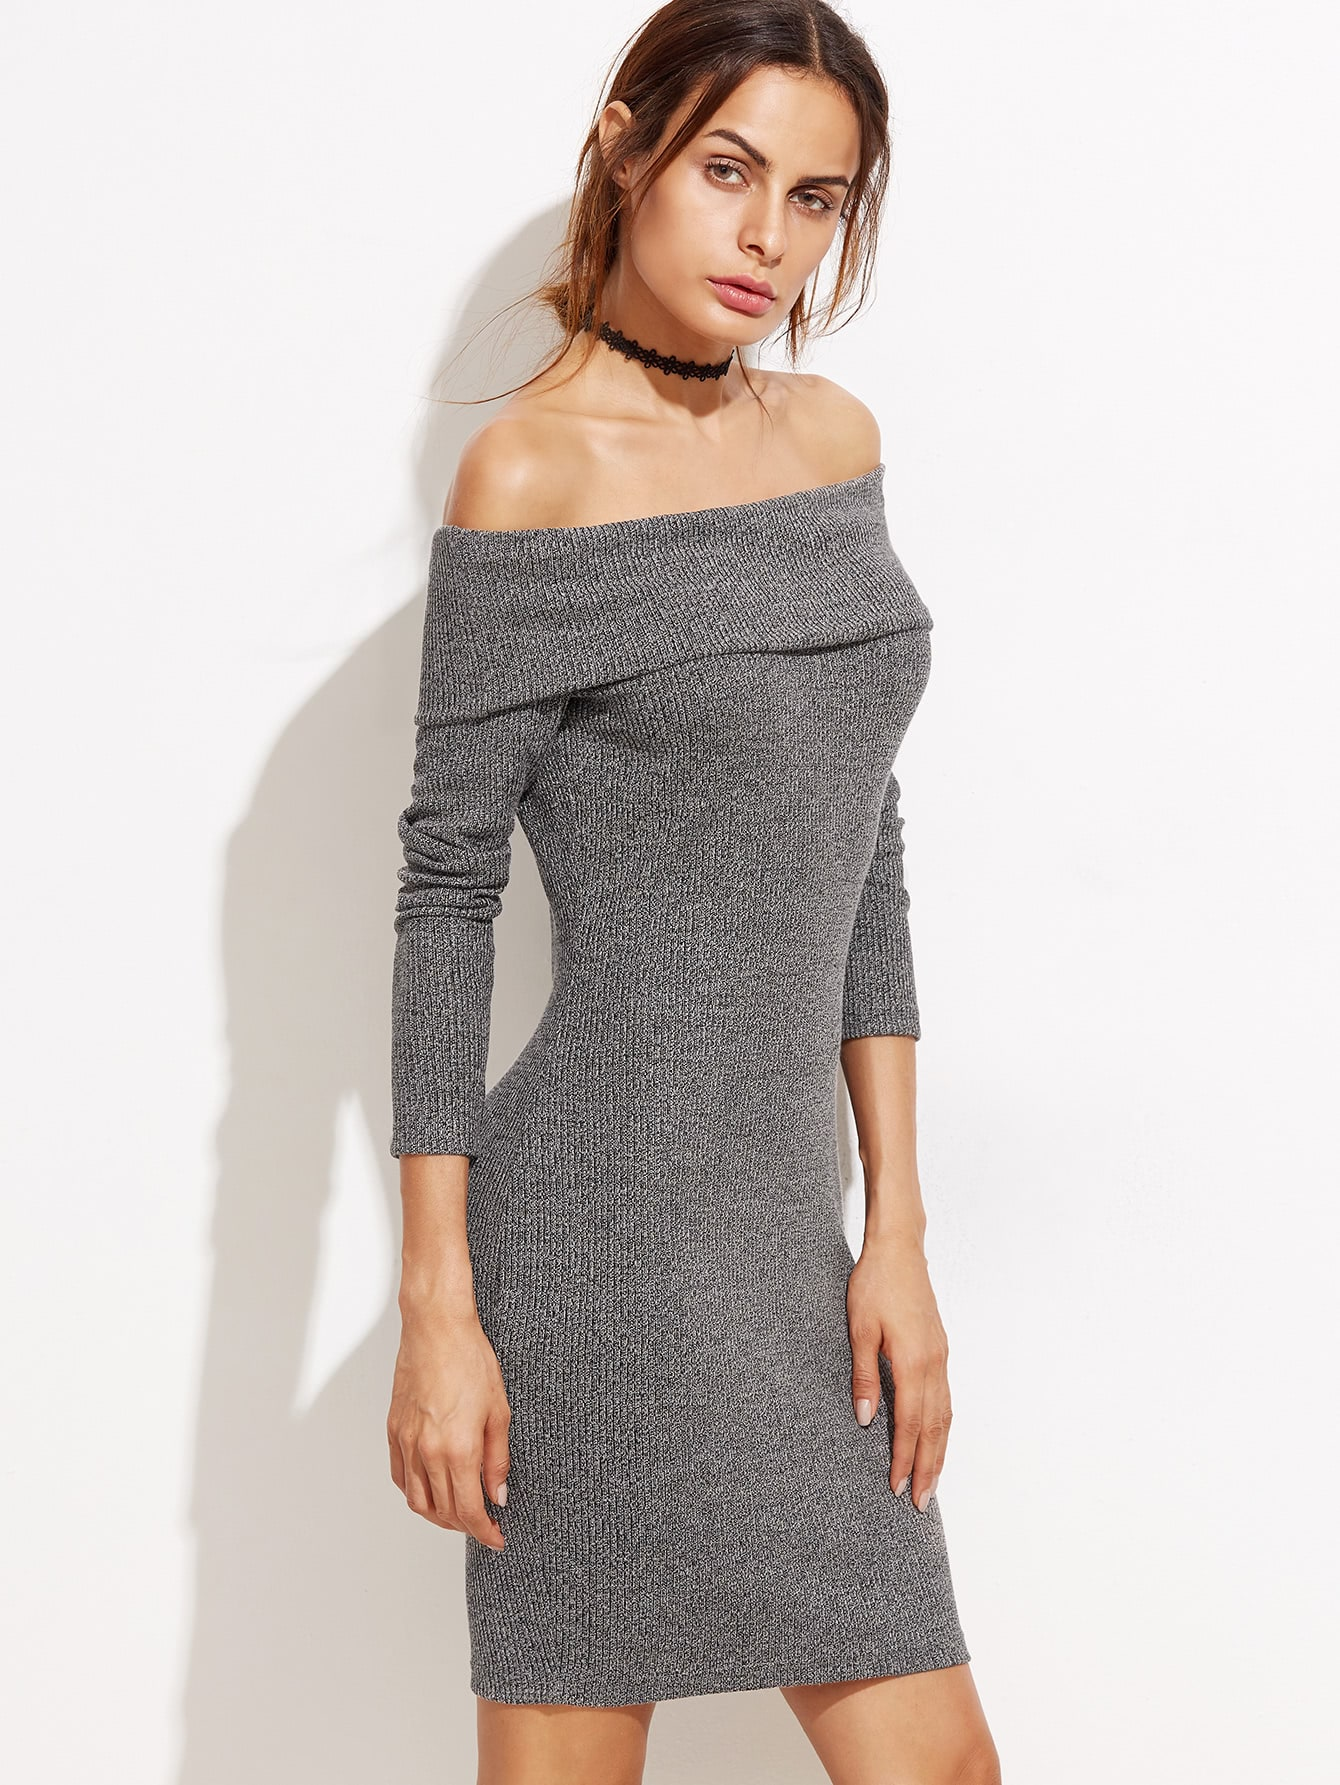 Heather Grey Foldover Off The Shoulder Ribbed Dress dress160929707